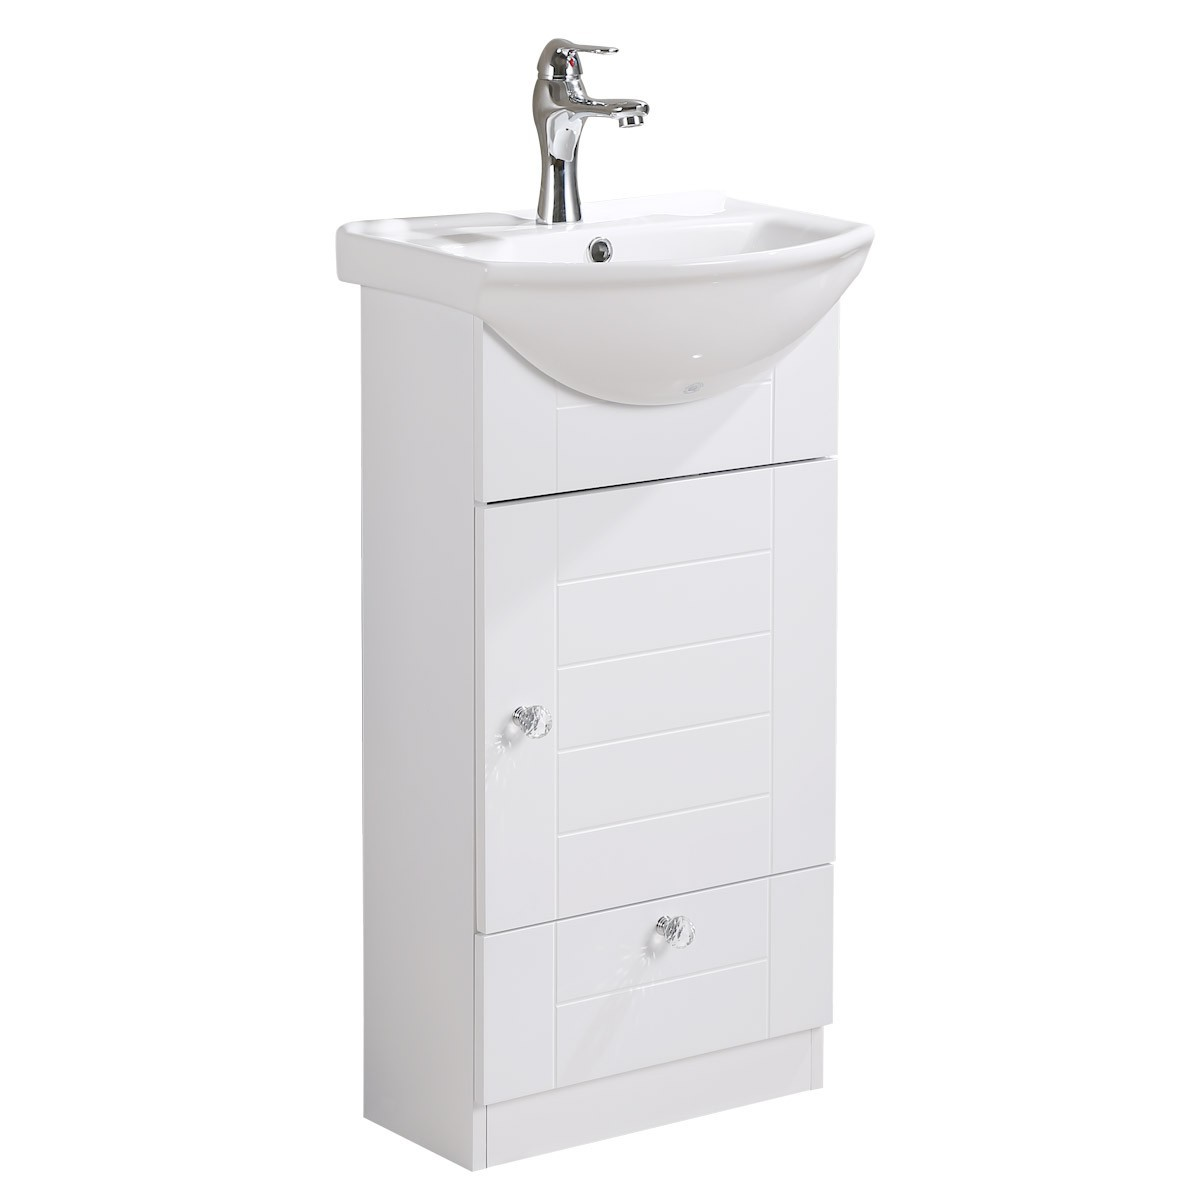 cabinet sinks small bathrooms small wall mounted cabinet vanity bathroom sink with 17588